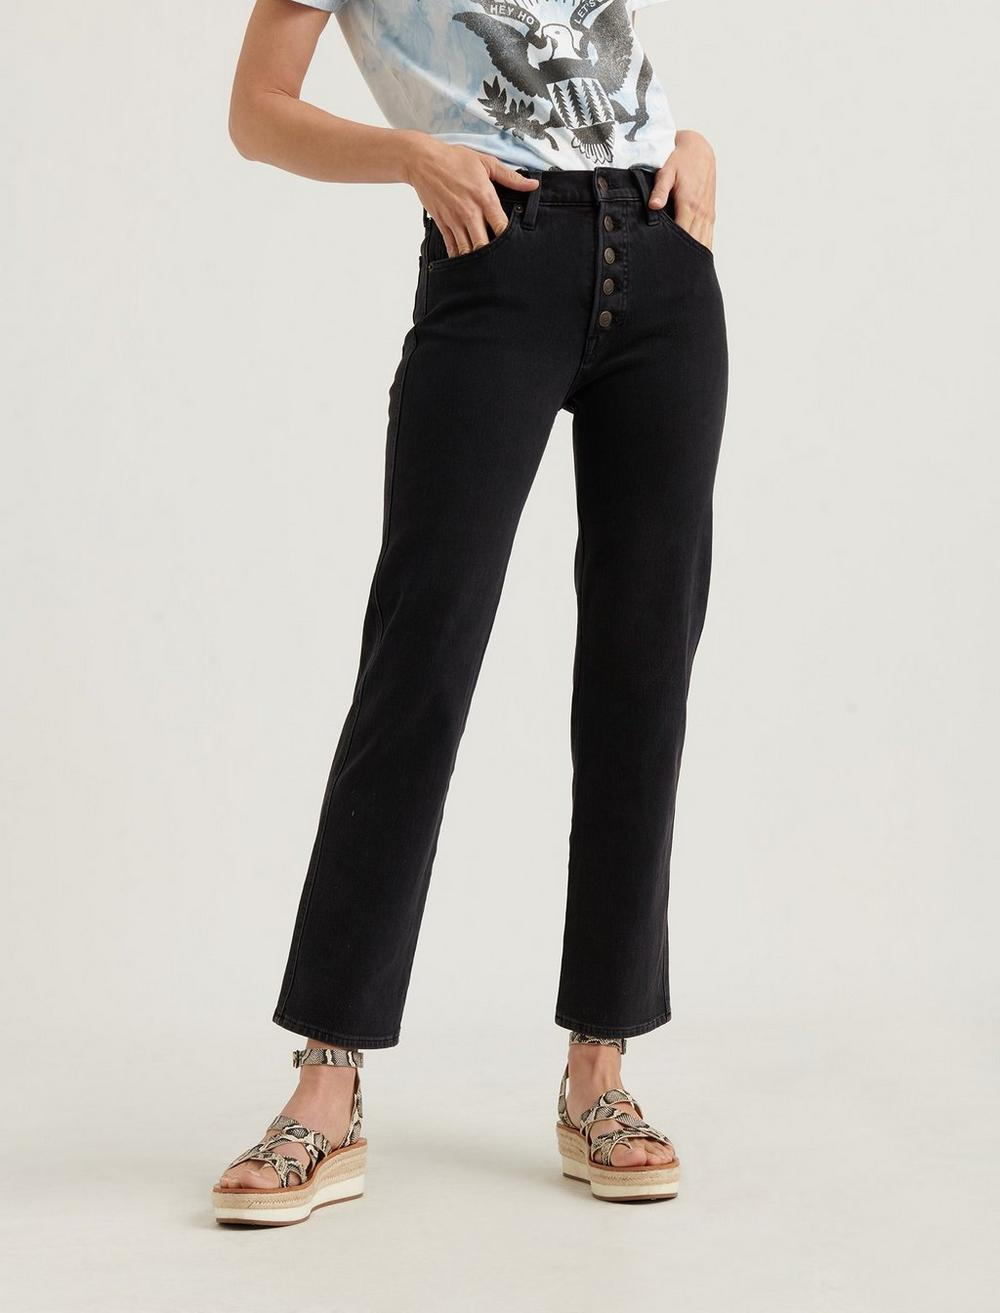 MID RISE AUTHENTIC STRAIGHT JEAN, image 5